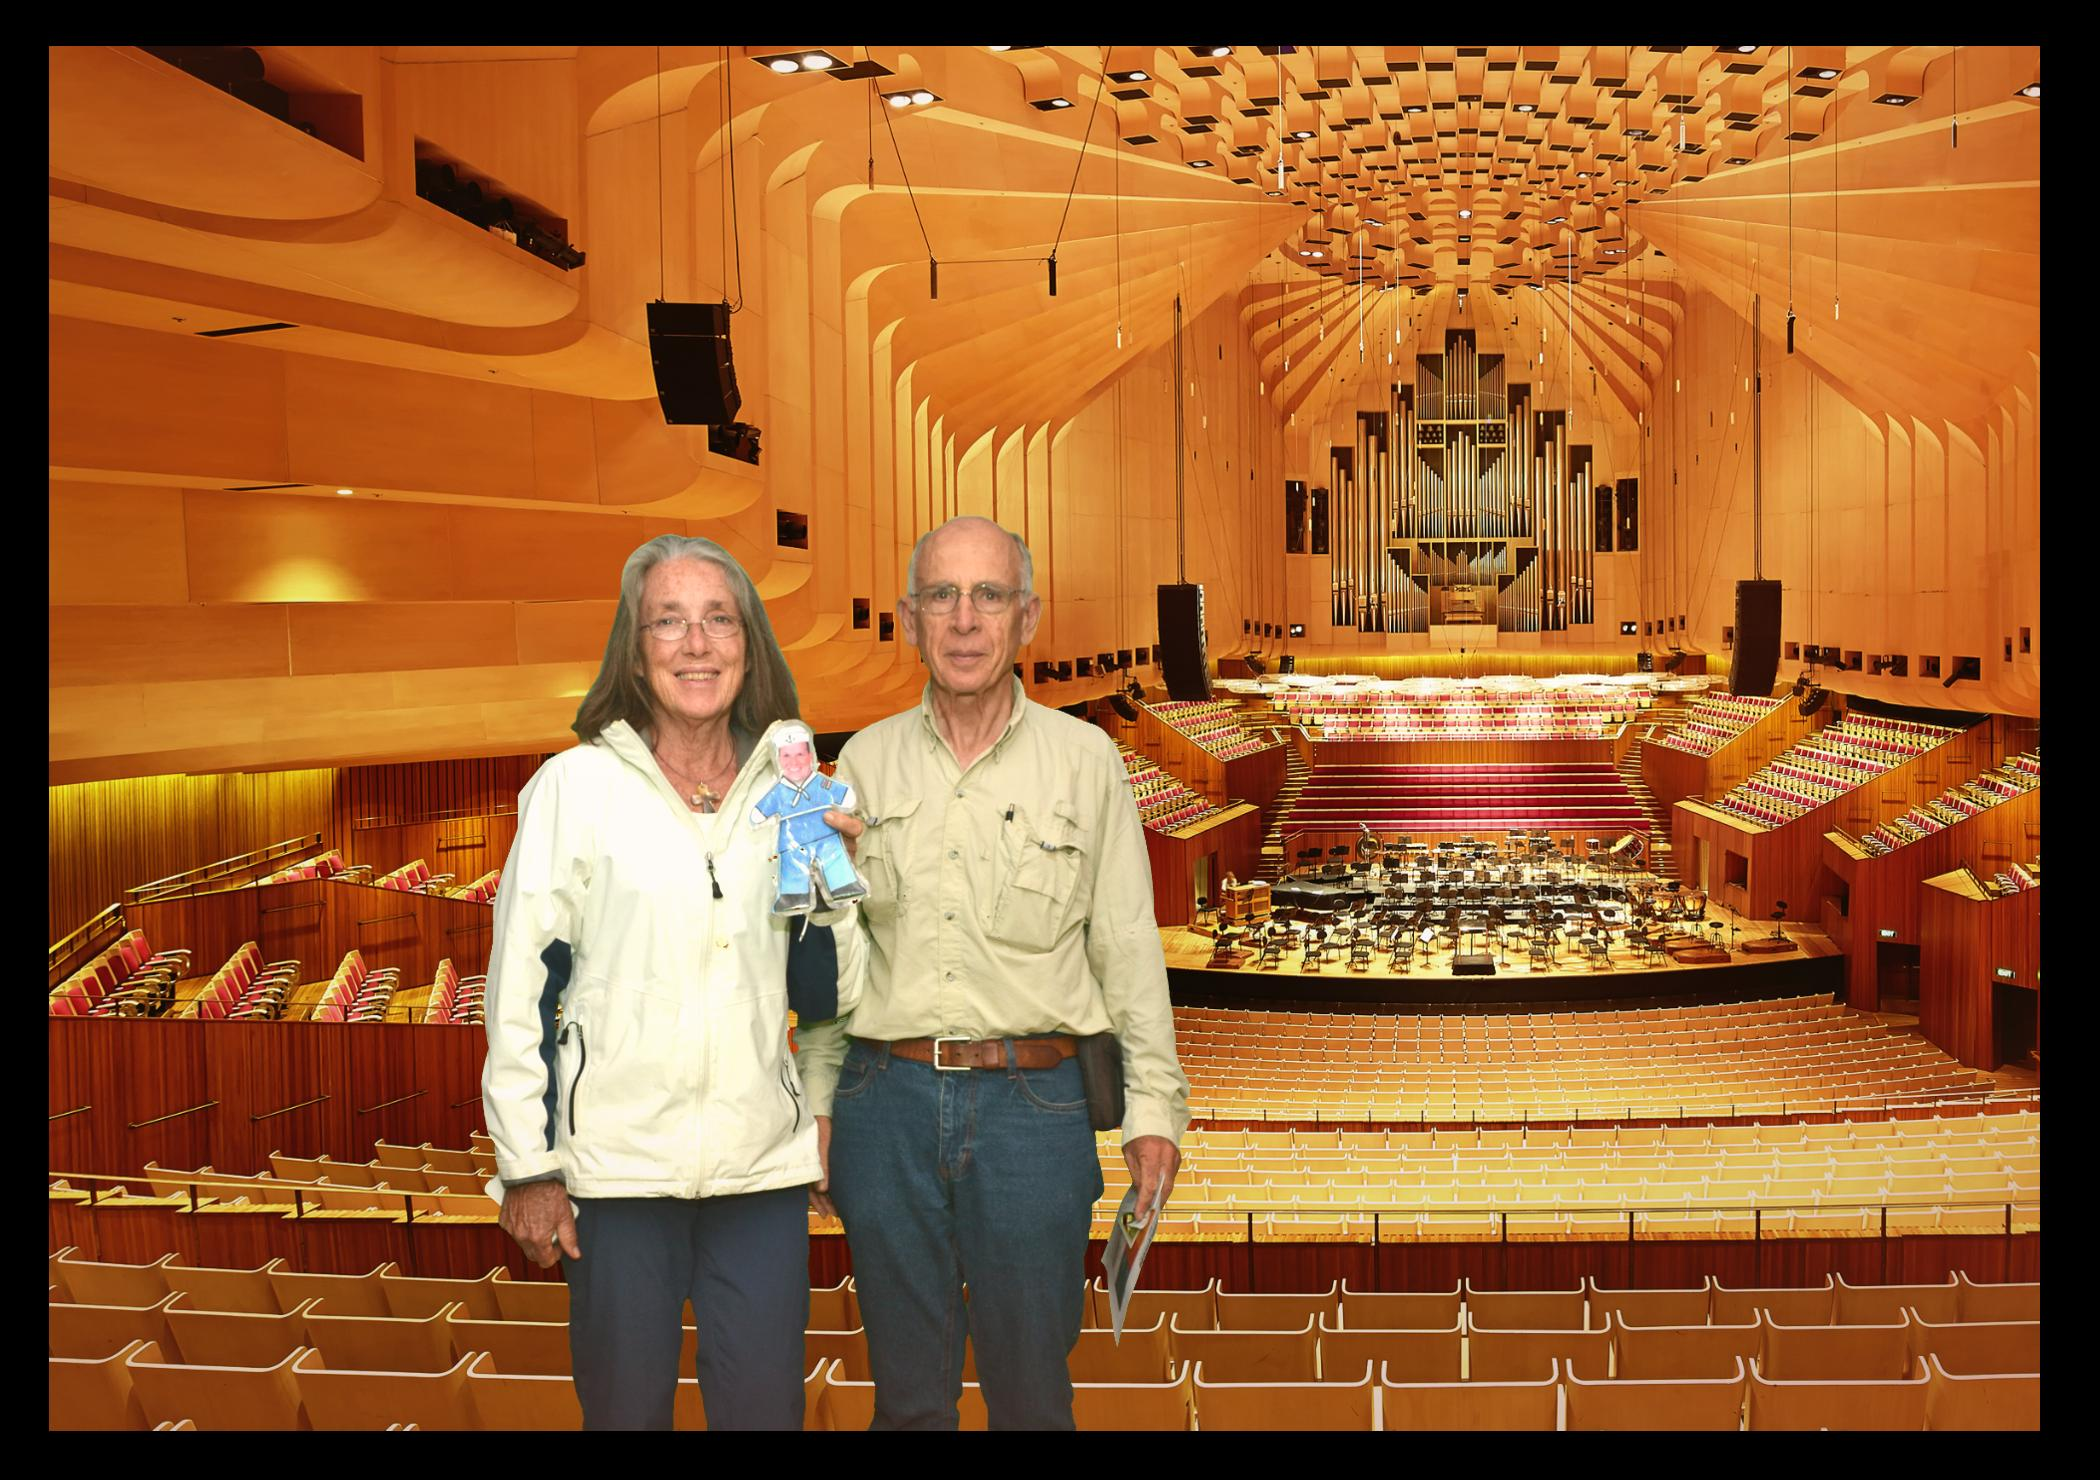 112. Flat Mr. DavisJeff & I posed for a photo at the Sydney Opera House as they will not allow photos during events. They digitally placed various scenes of the interior and exterior be